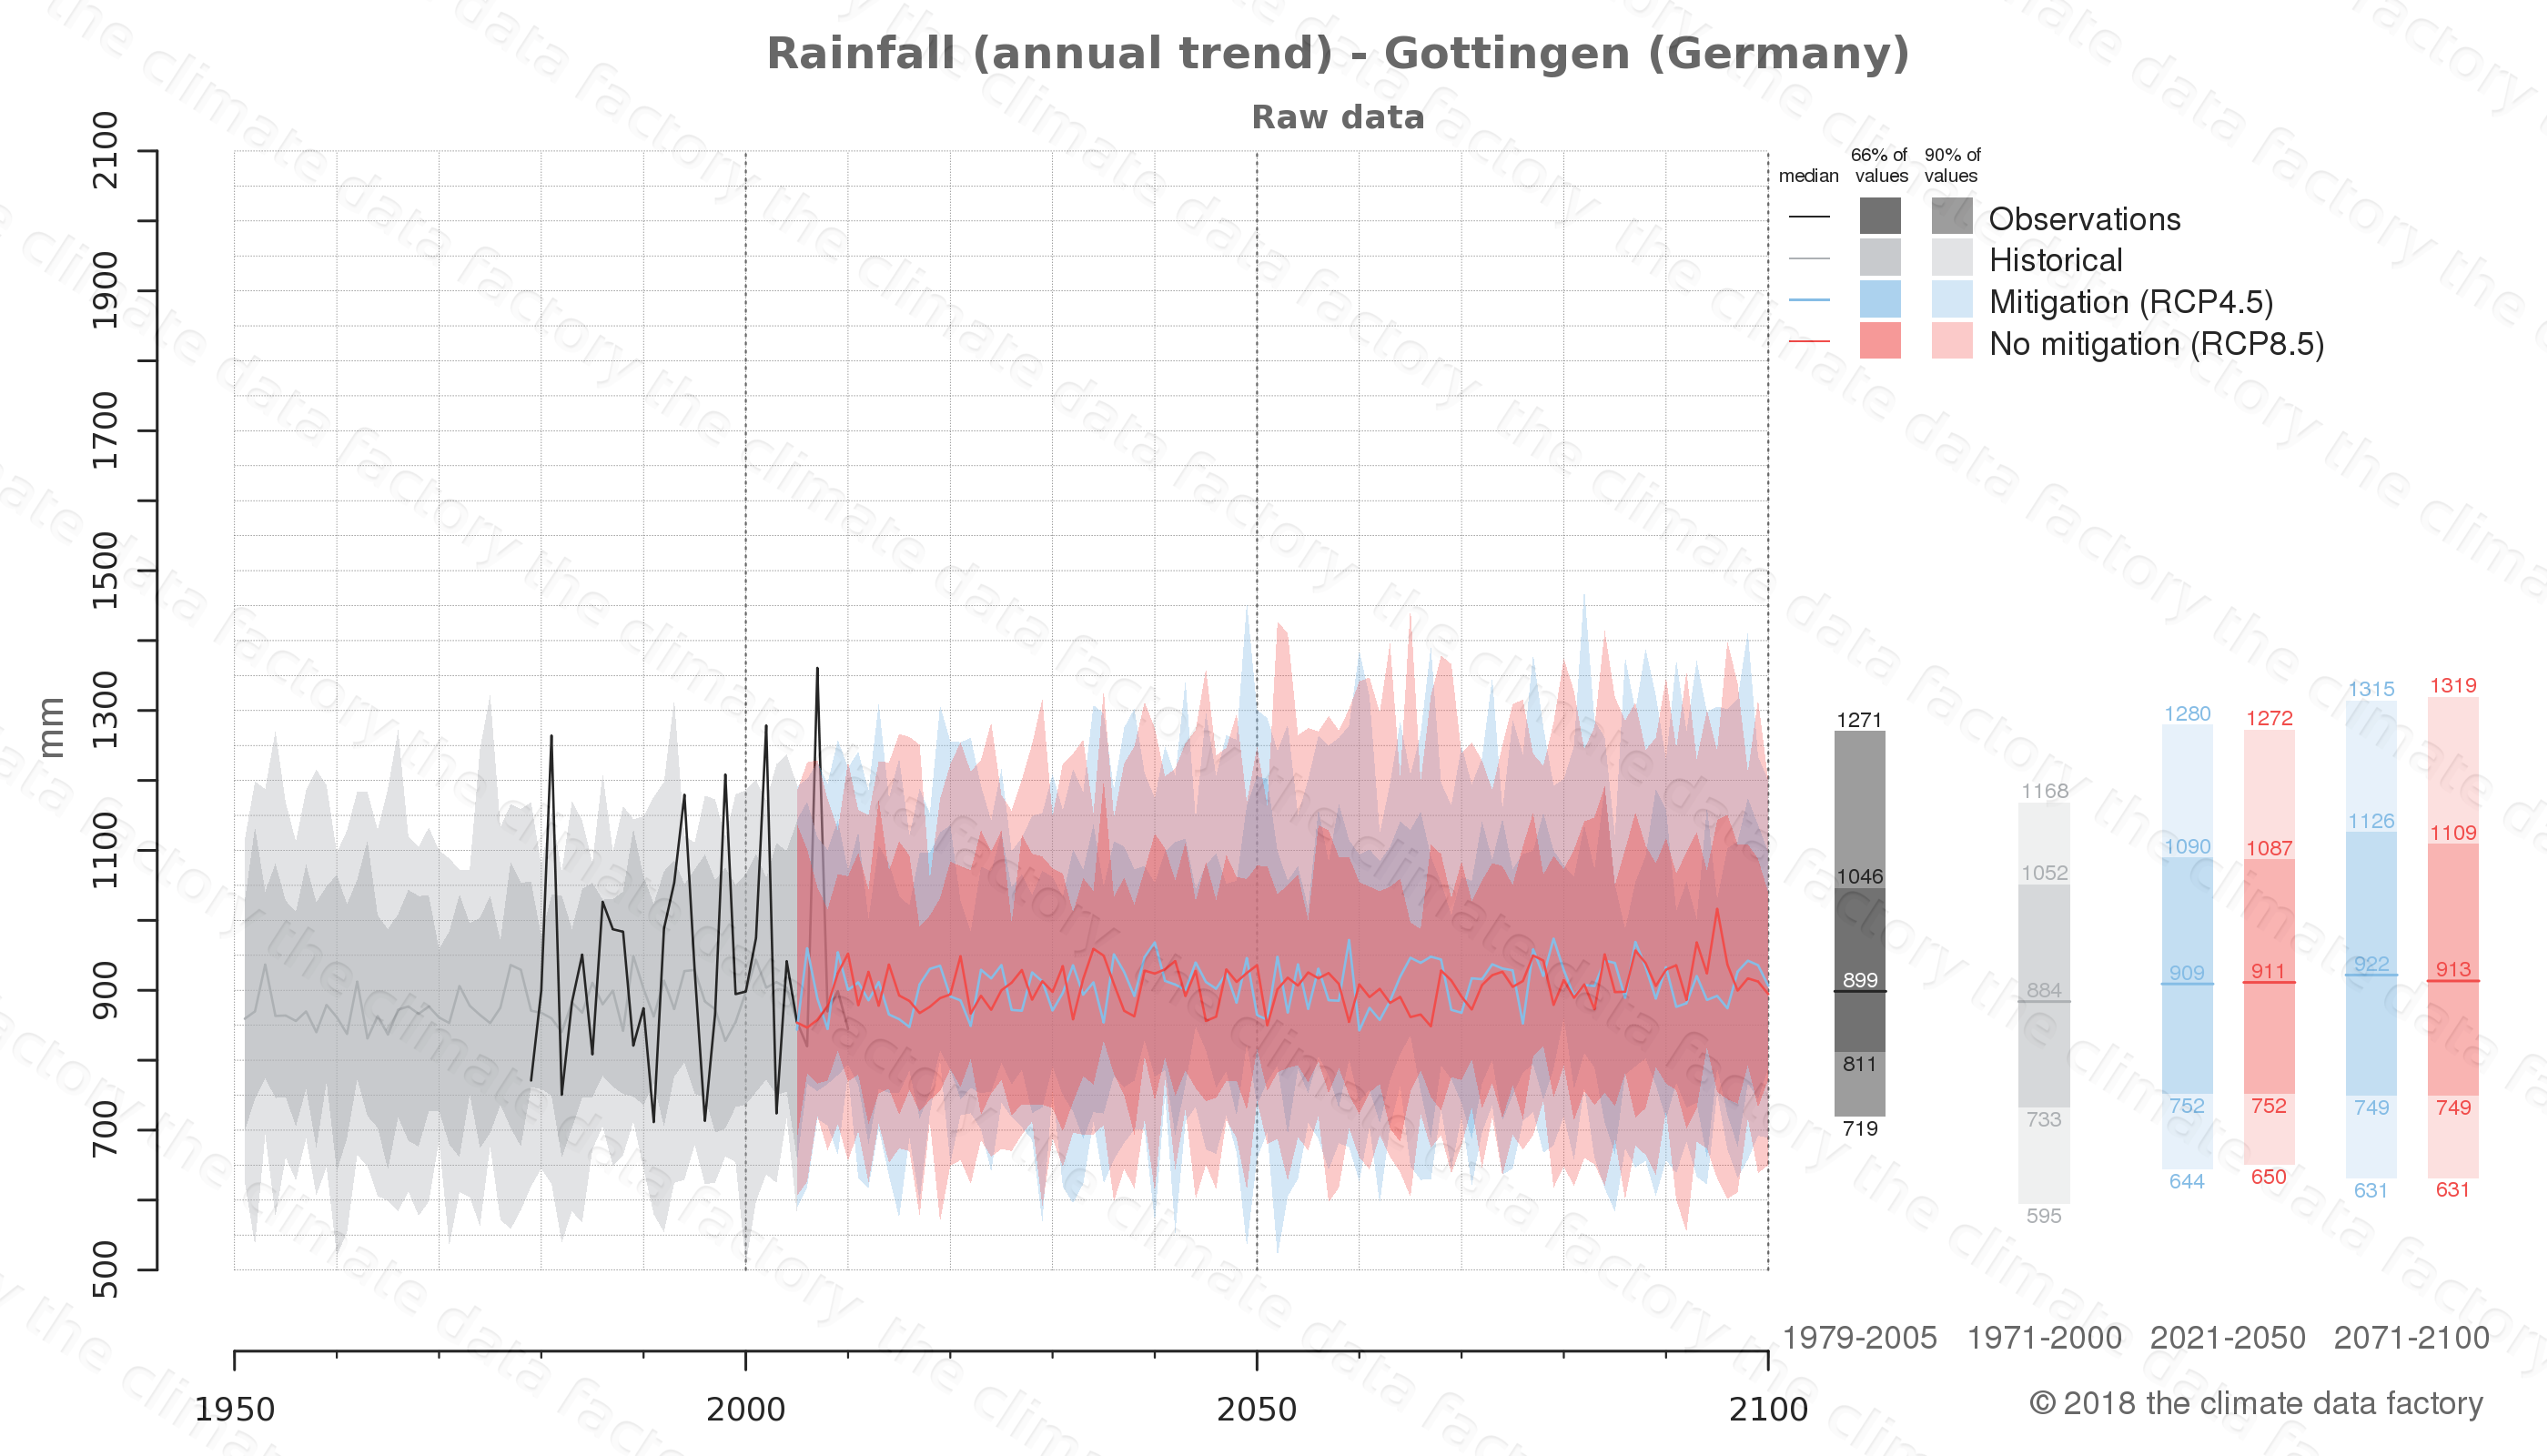 climate change data policy adaptation climate graph city data rainfall gottingen germany